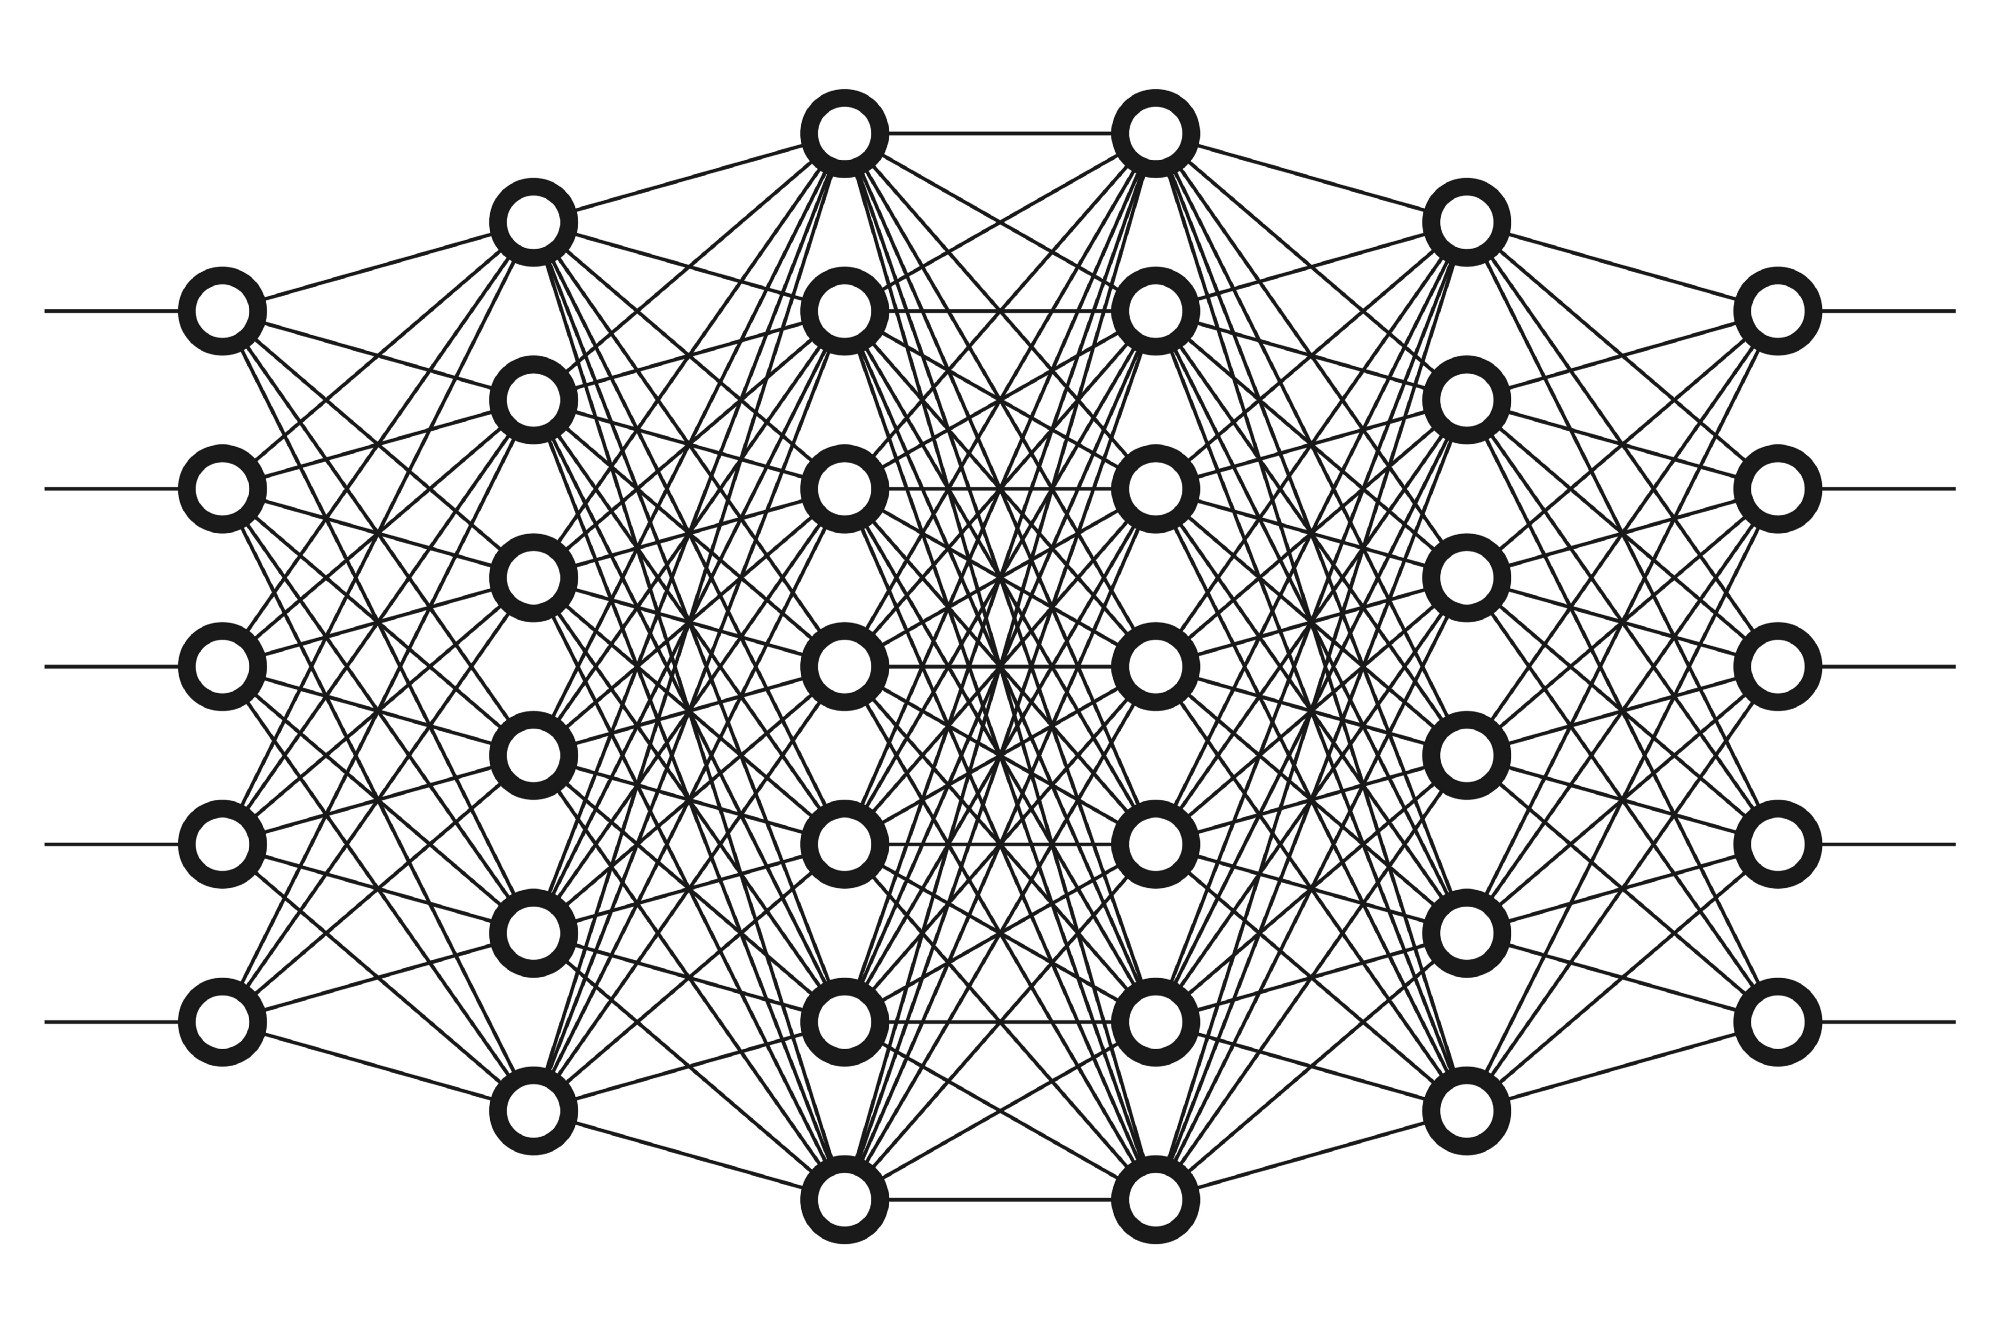 Limitations Of Deep Learning For Vision And How We Might